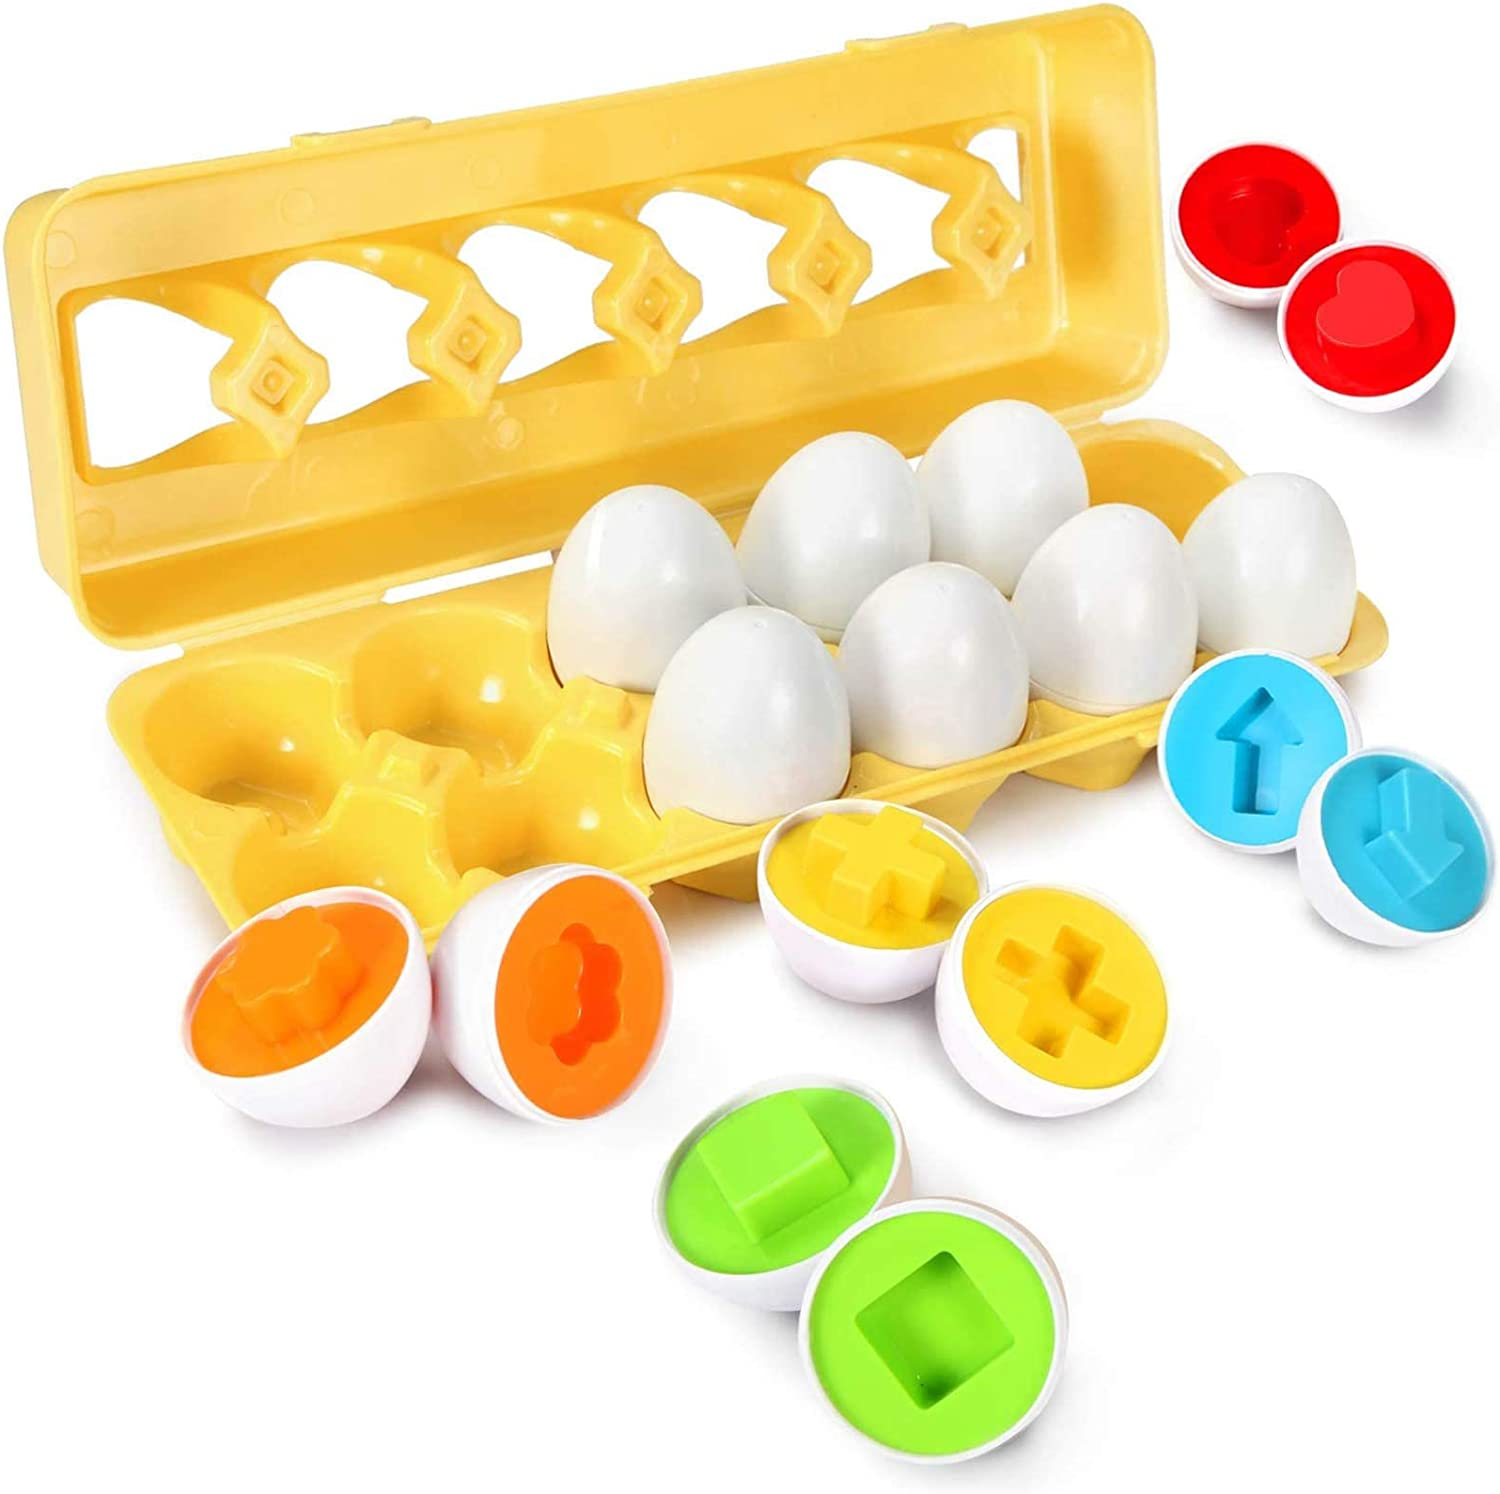 Color /& Shape Sorter Matching Egg Set Educational Learn Puzzle Game Toy Kid Gift